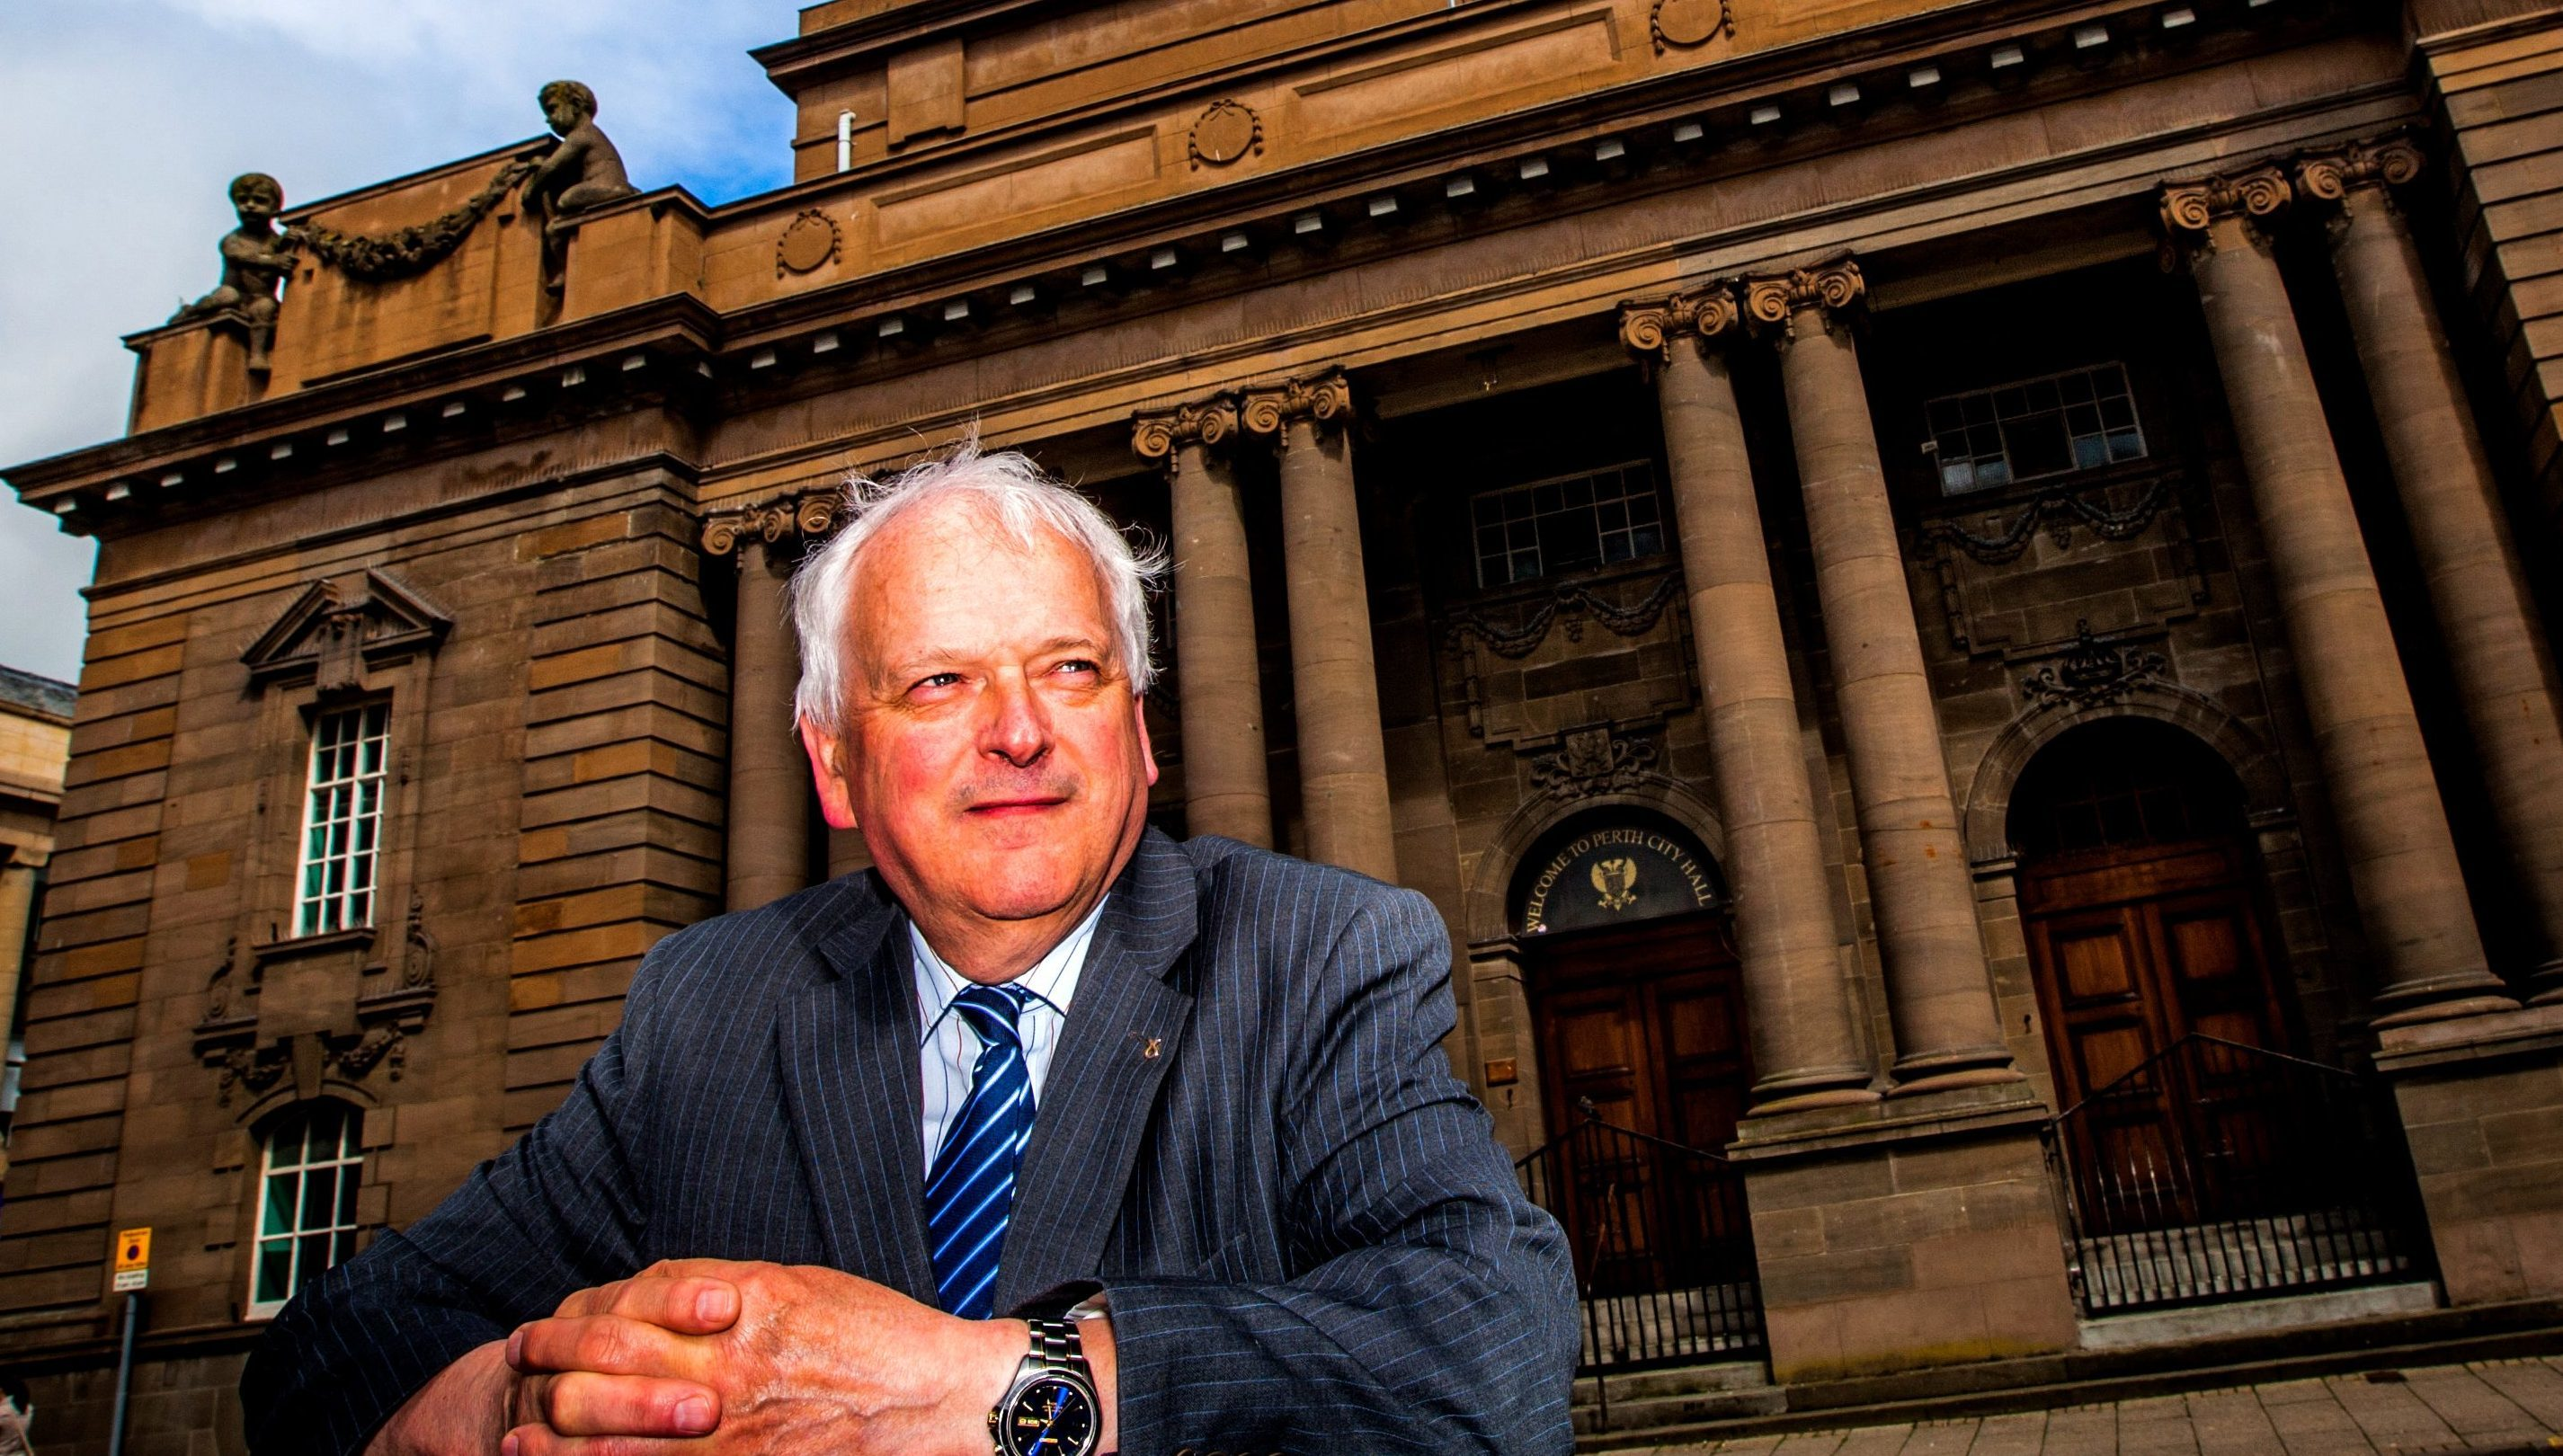 Council leader Ian Miller outside Perth City Hall.